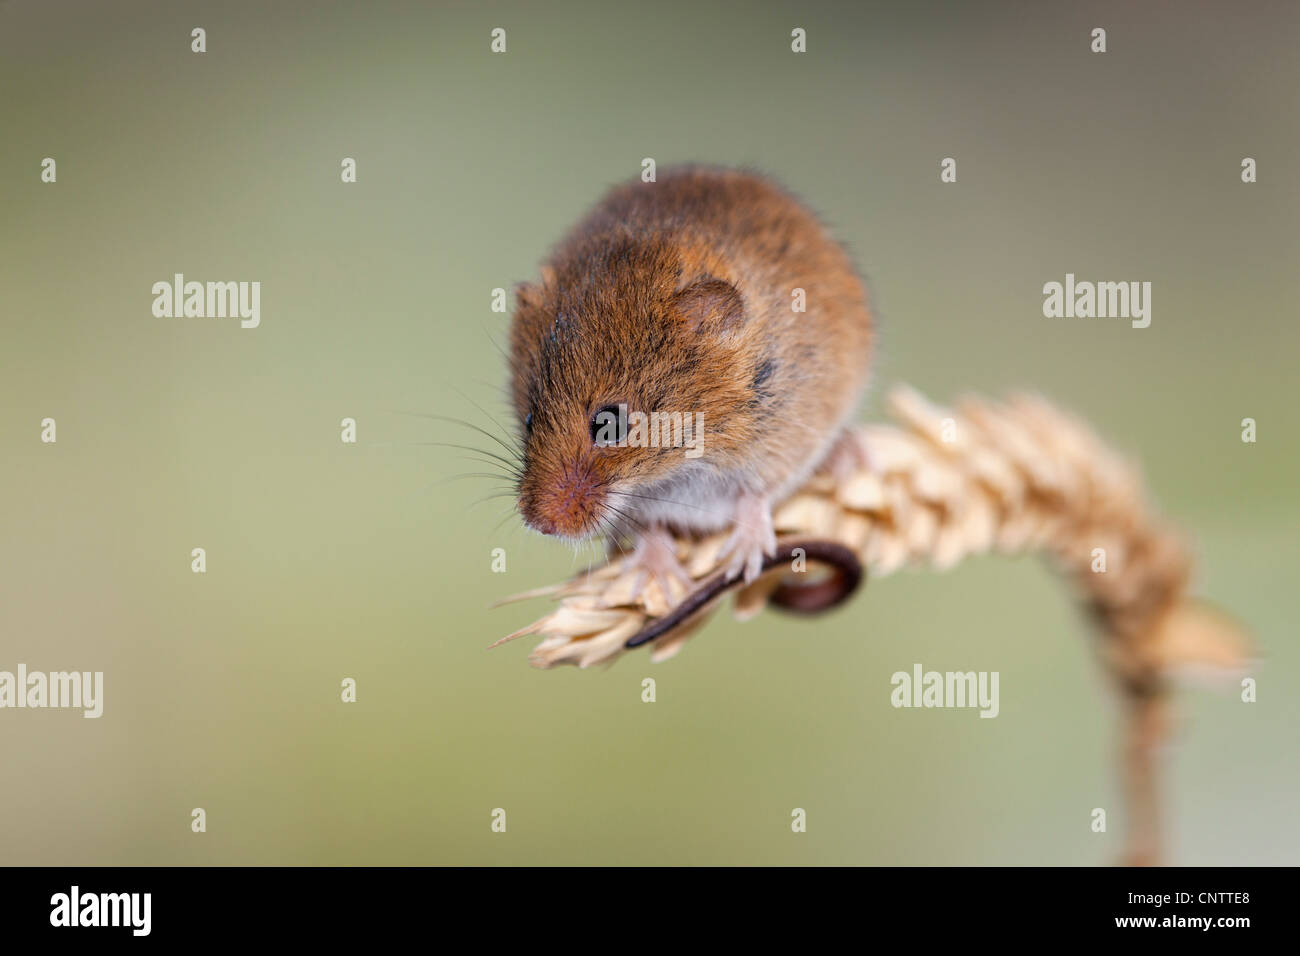 Harvest Mouse; Micromys minutus; on ear of corn; UK - Stock Image